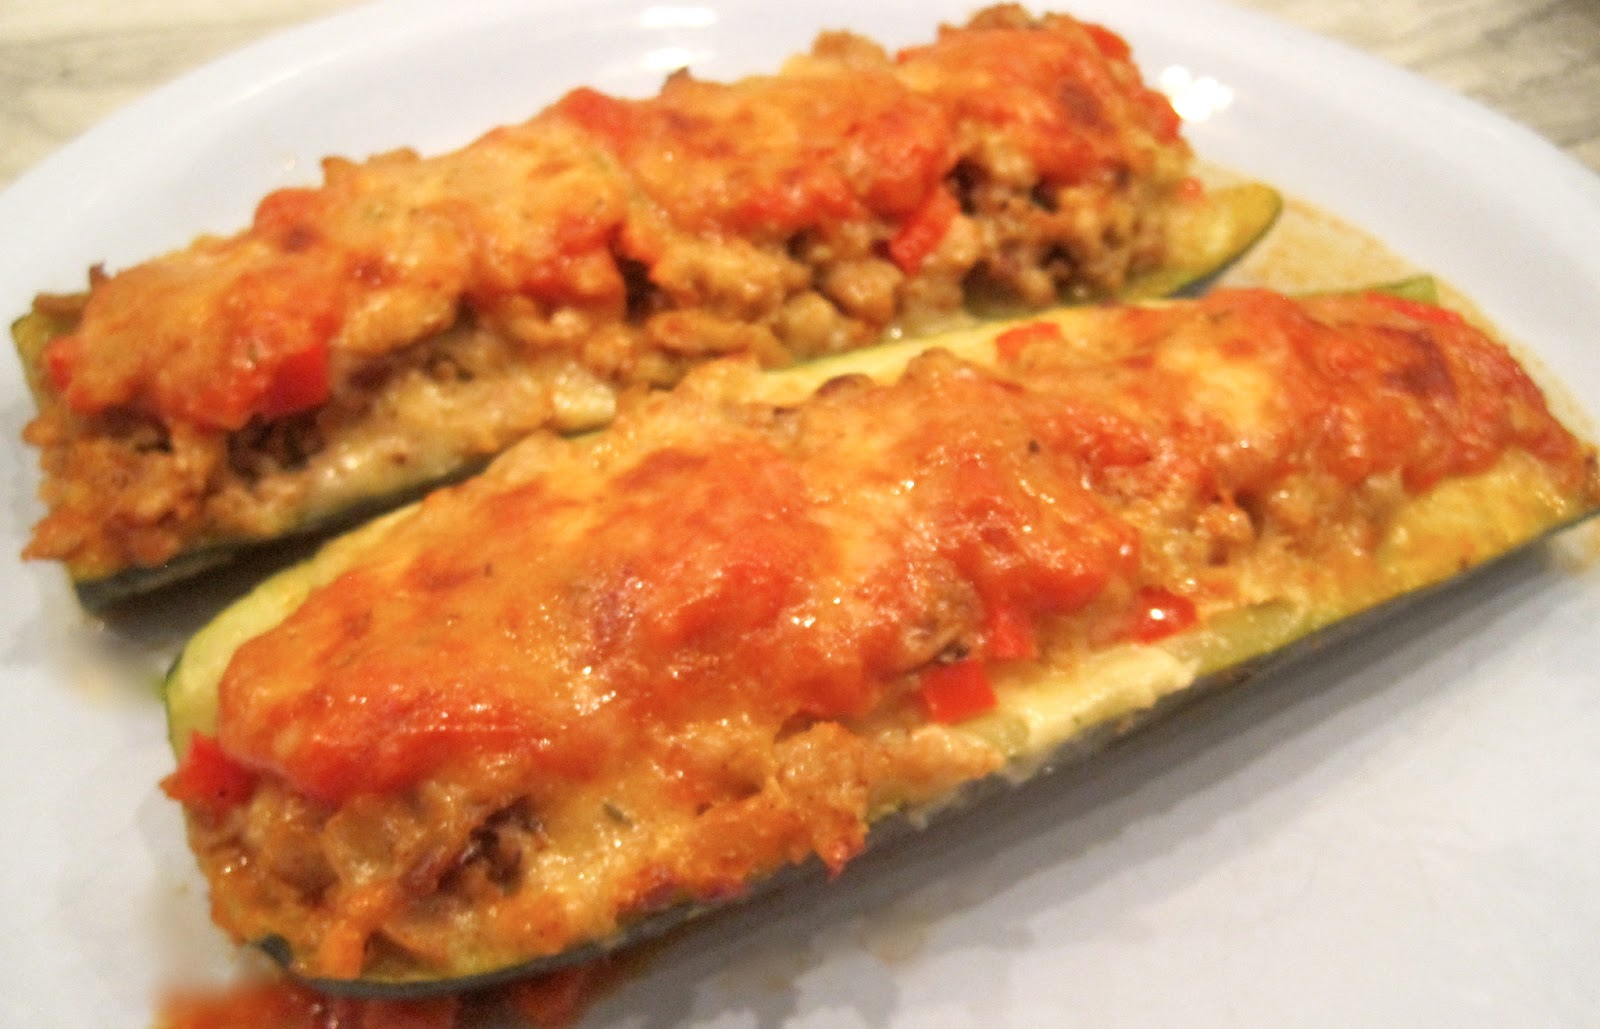 The Wooden Spoon Diaries: Sausage Sutffed Zucchini Boats